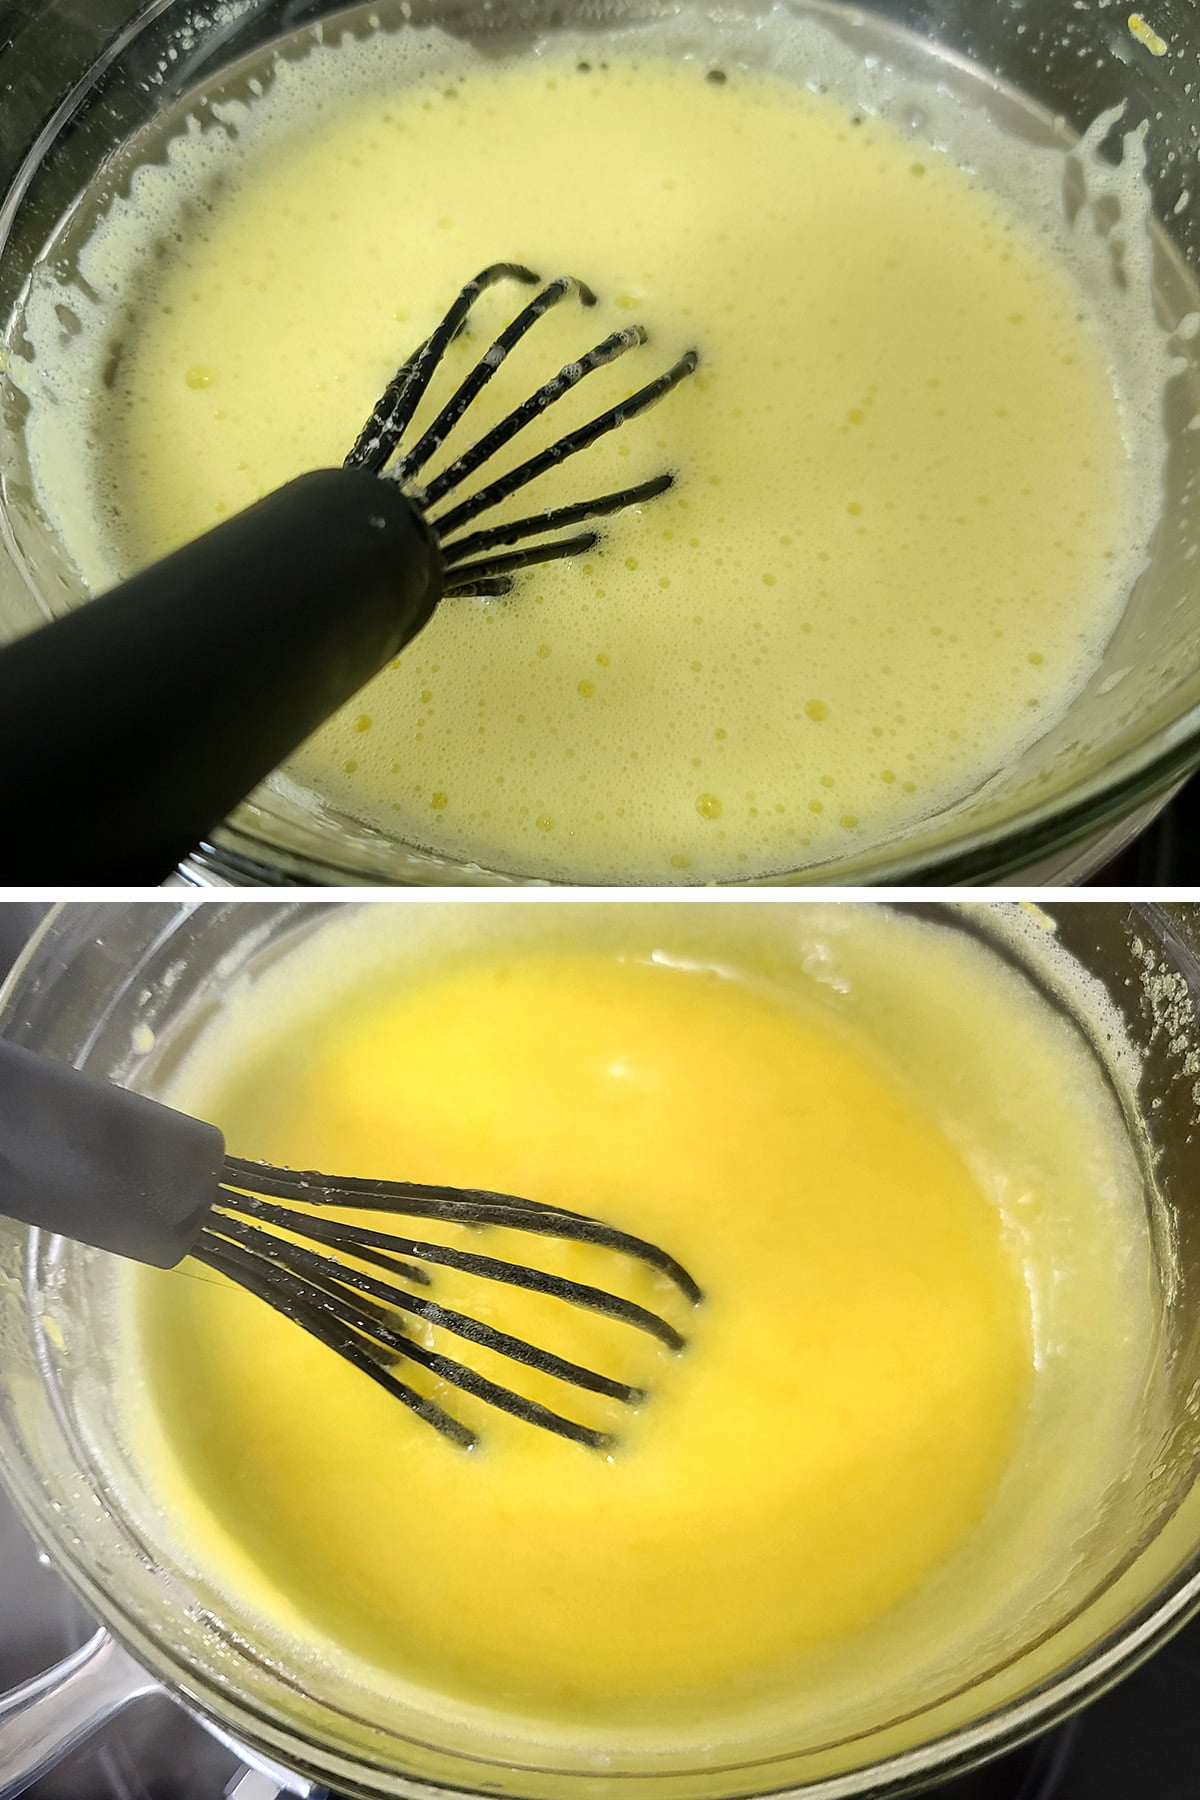 Lemon curd being whisked together over a double boiler.